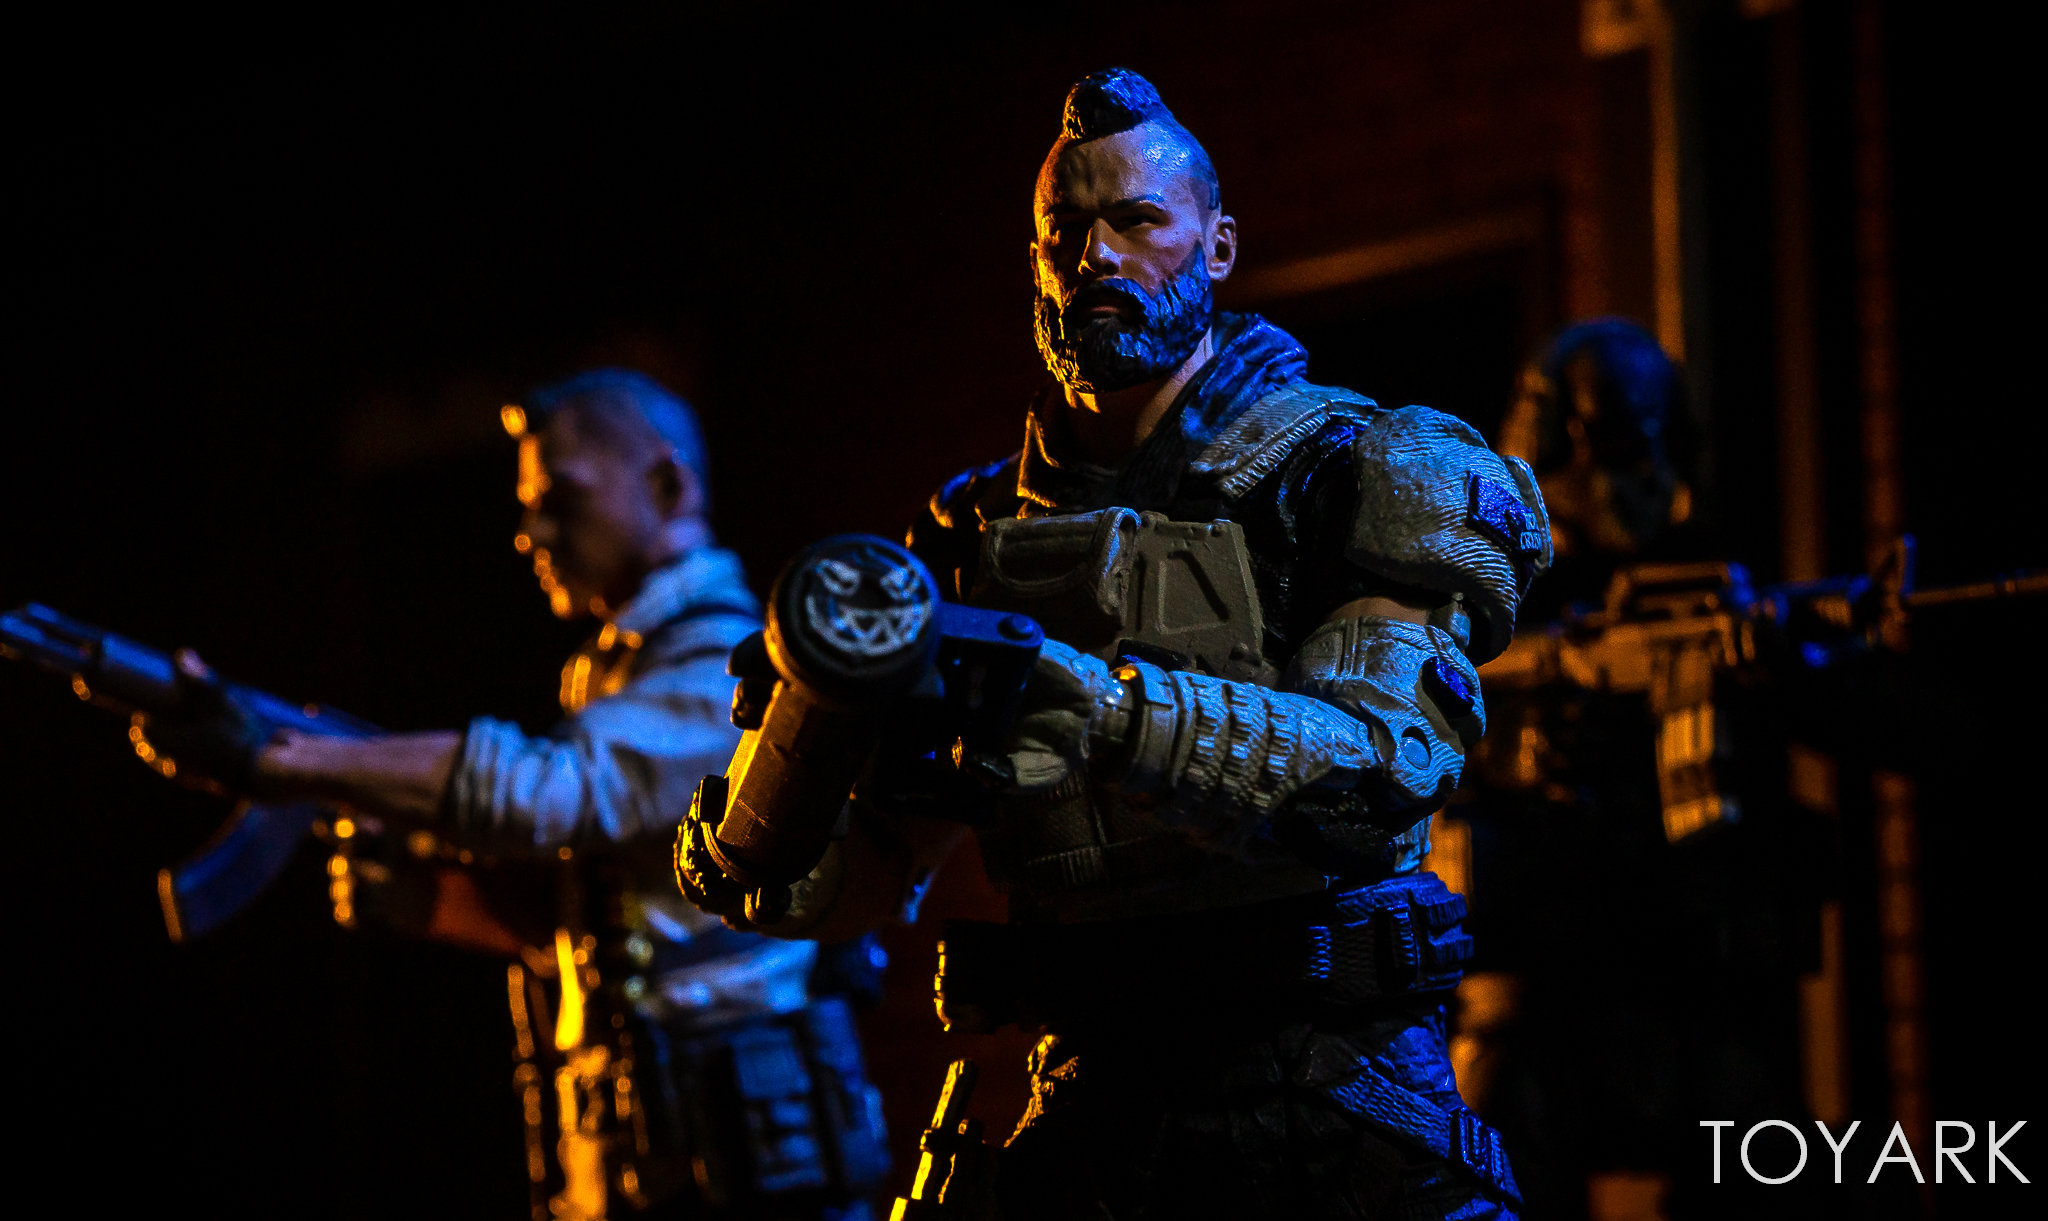 https://news.toyark.com/wp-content/uploads/sites/4/2019/01/Call-of-Duty-Wave-1-McFarlane-031.jpg